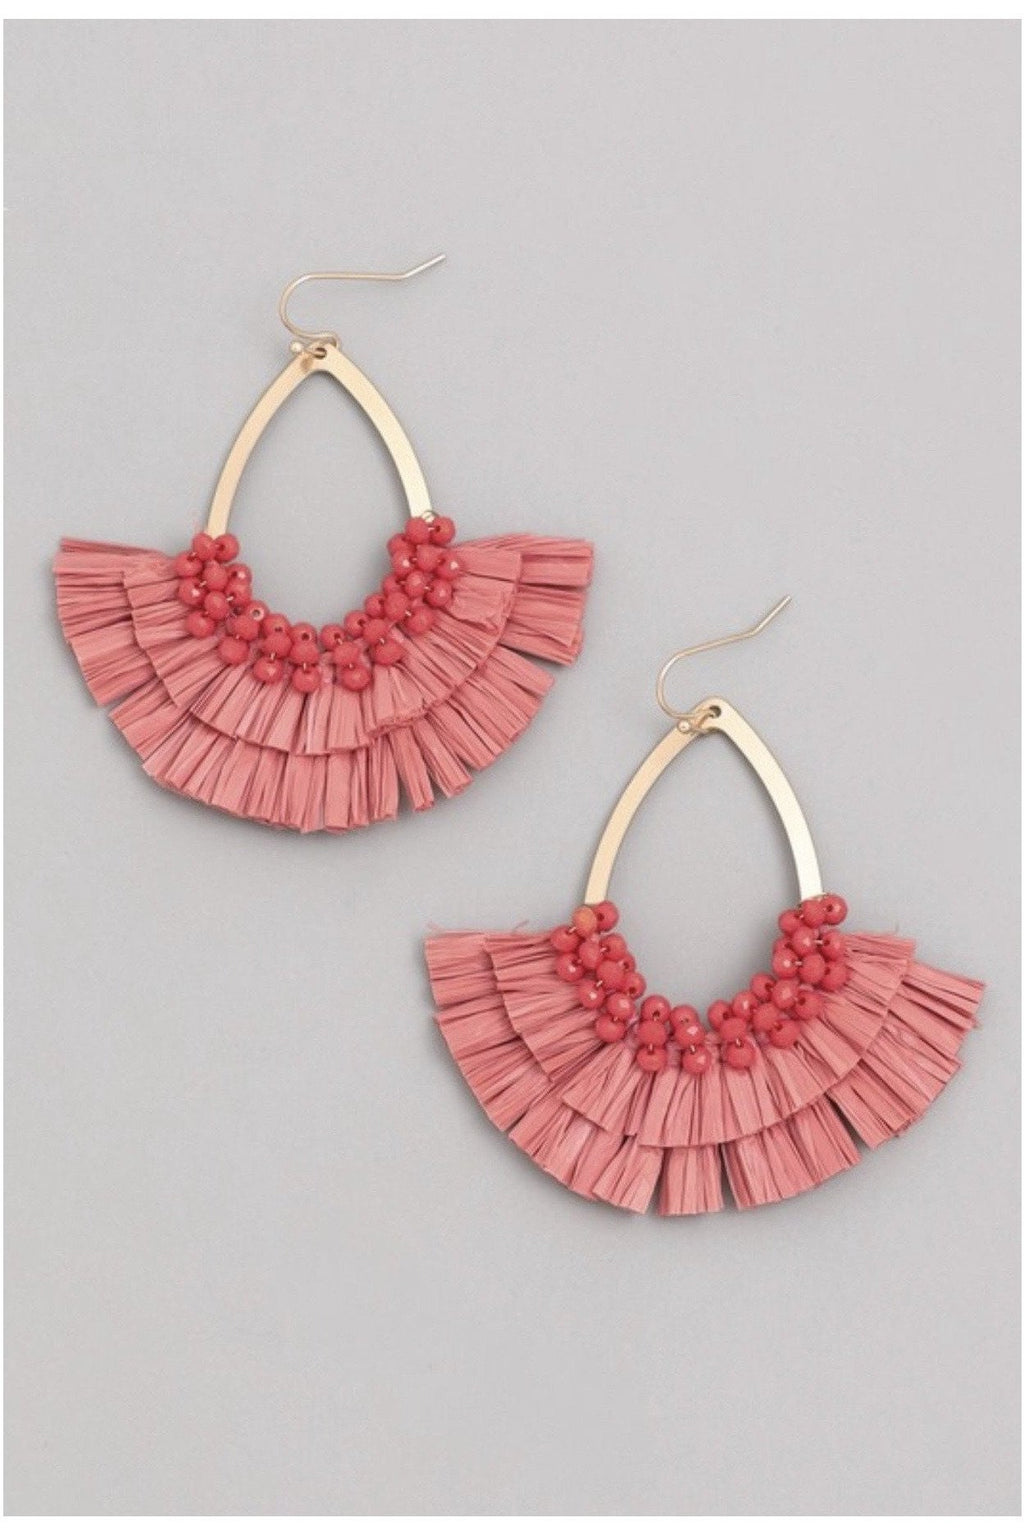 Fiesta Siesta Tequila Repeat Earrings